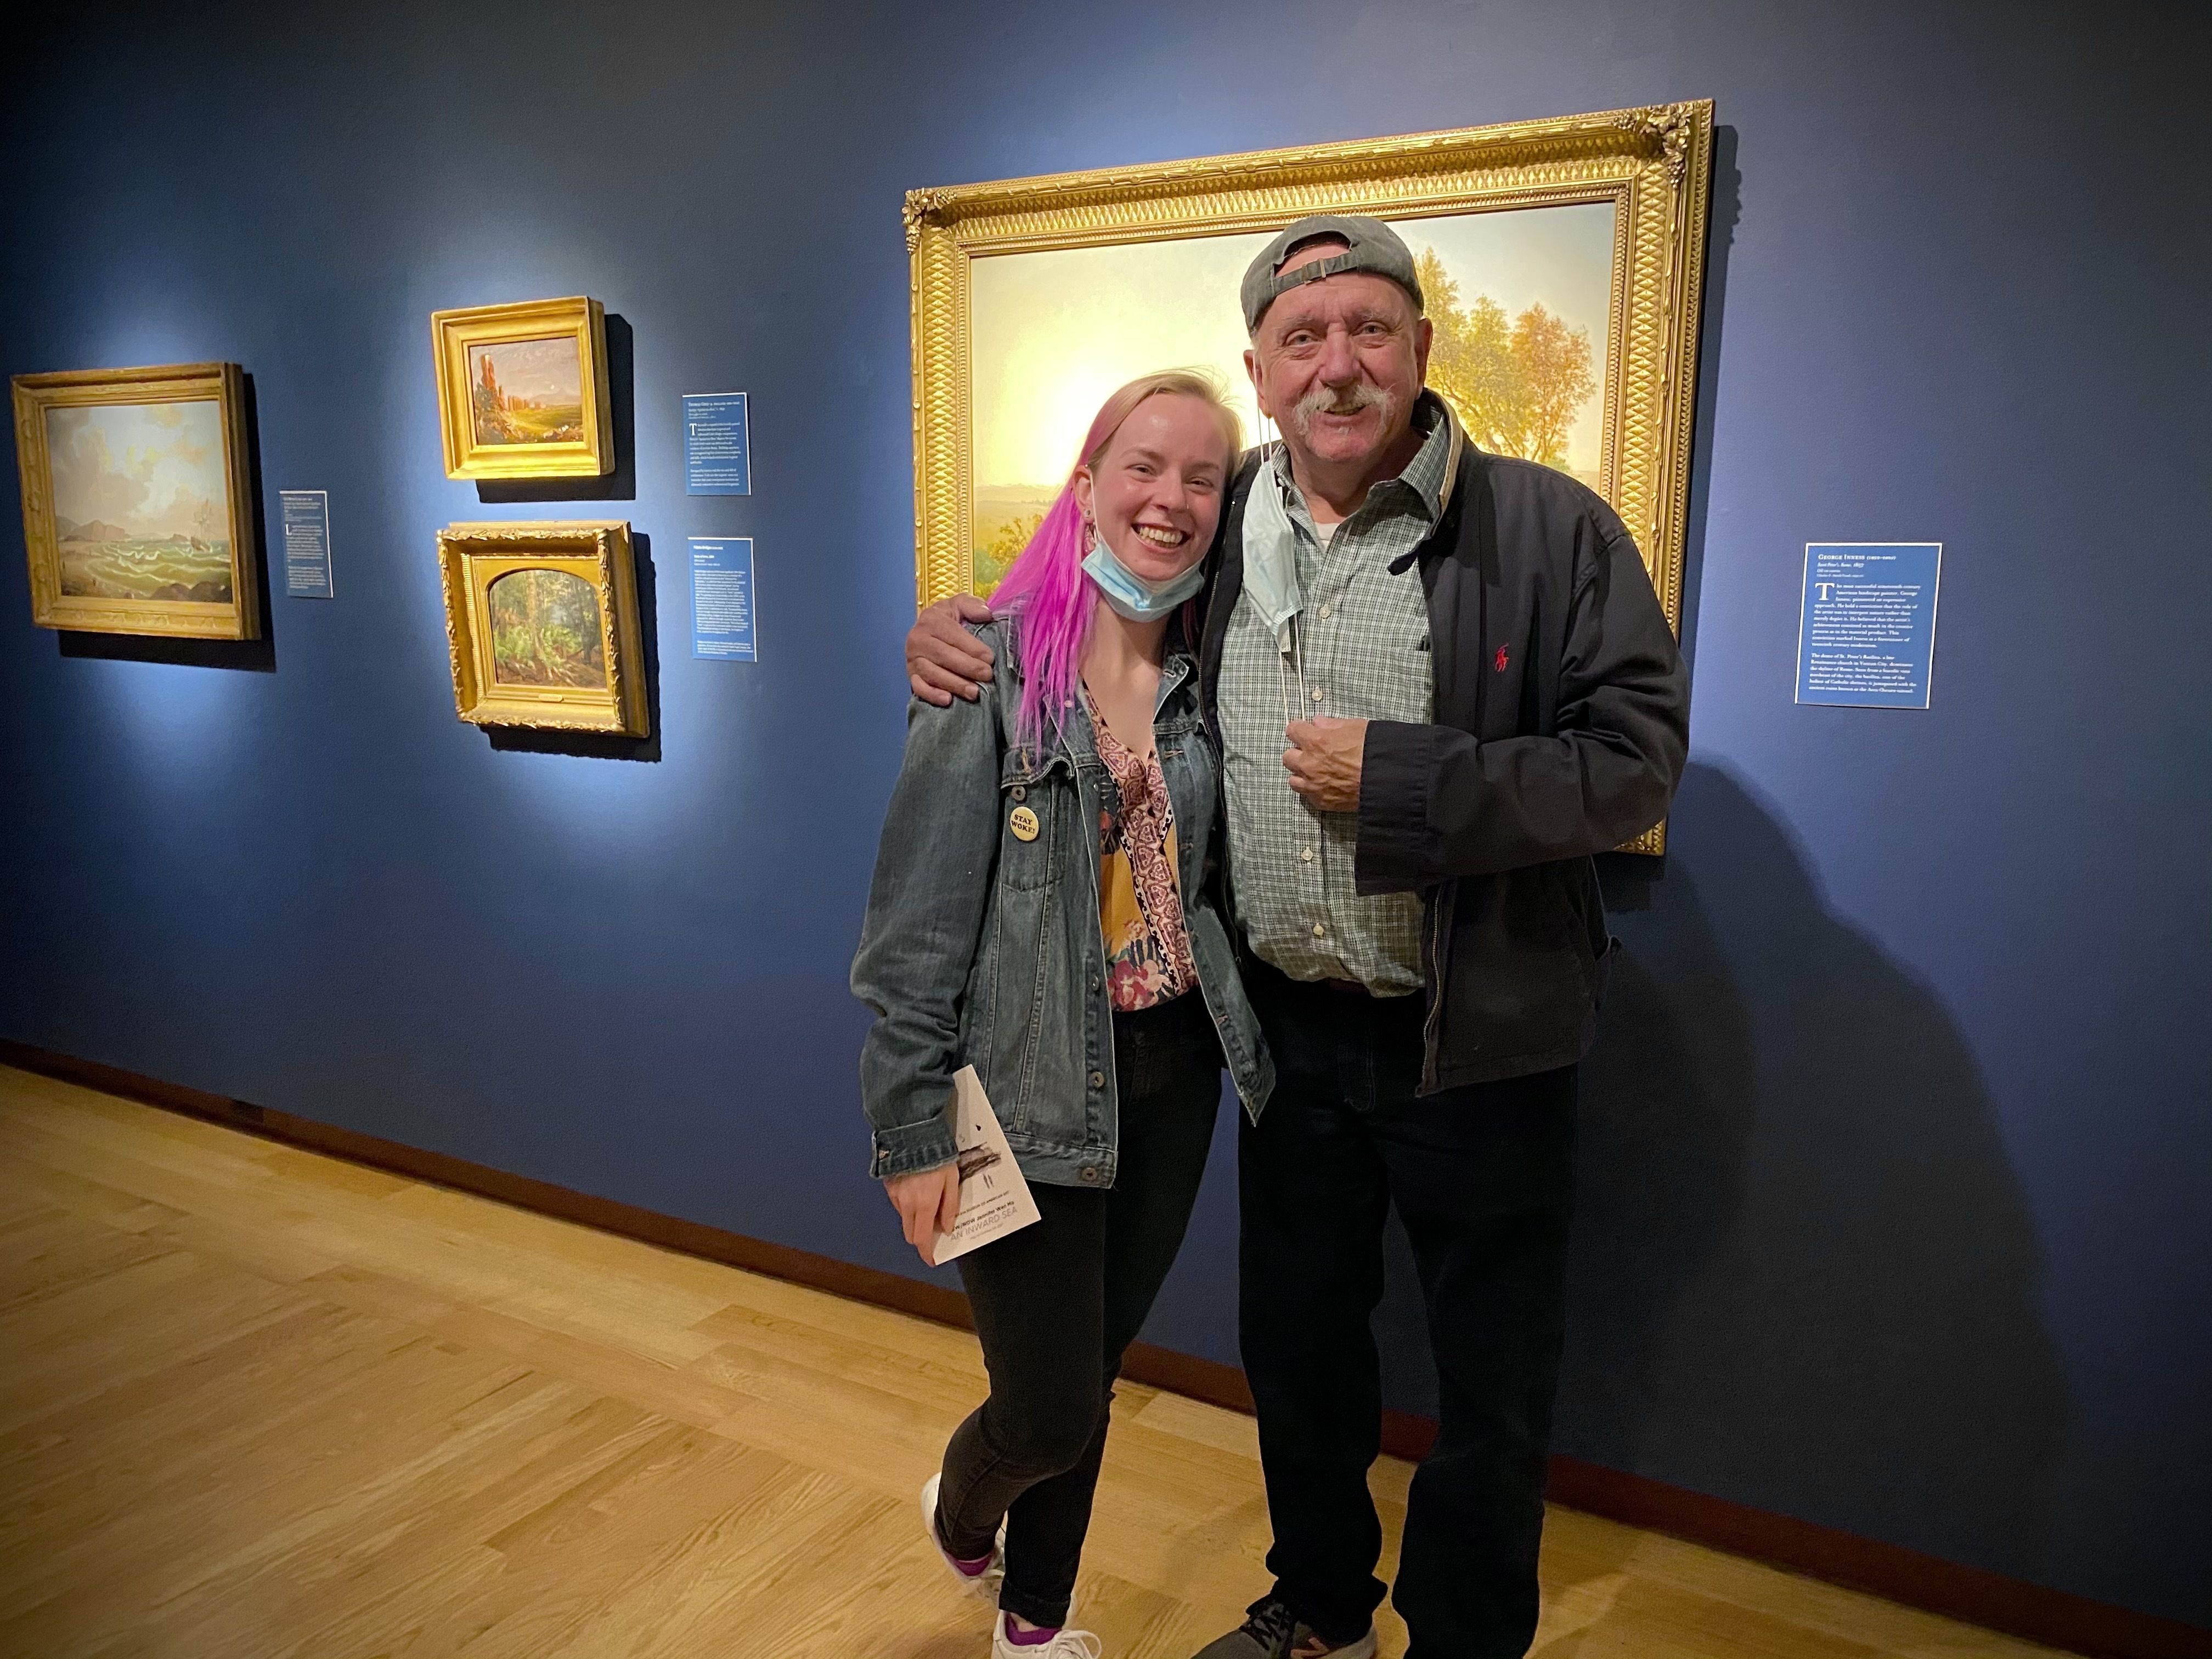 Father's Day @ NBMAA